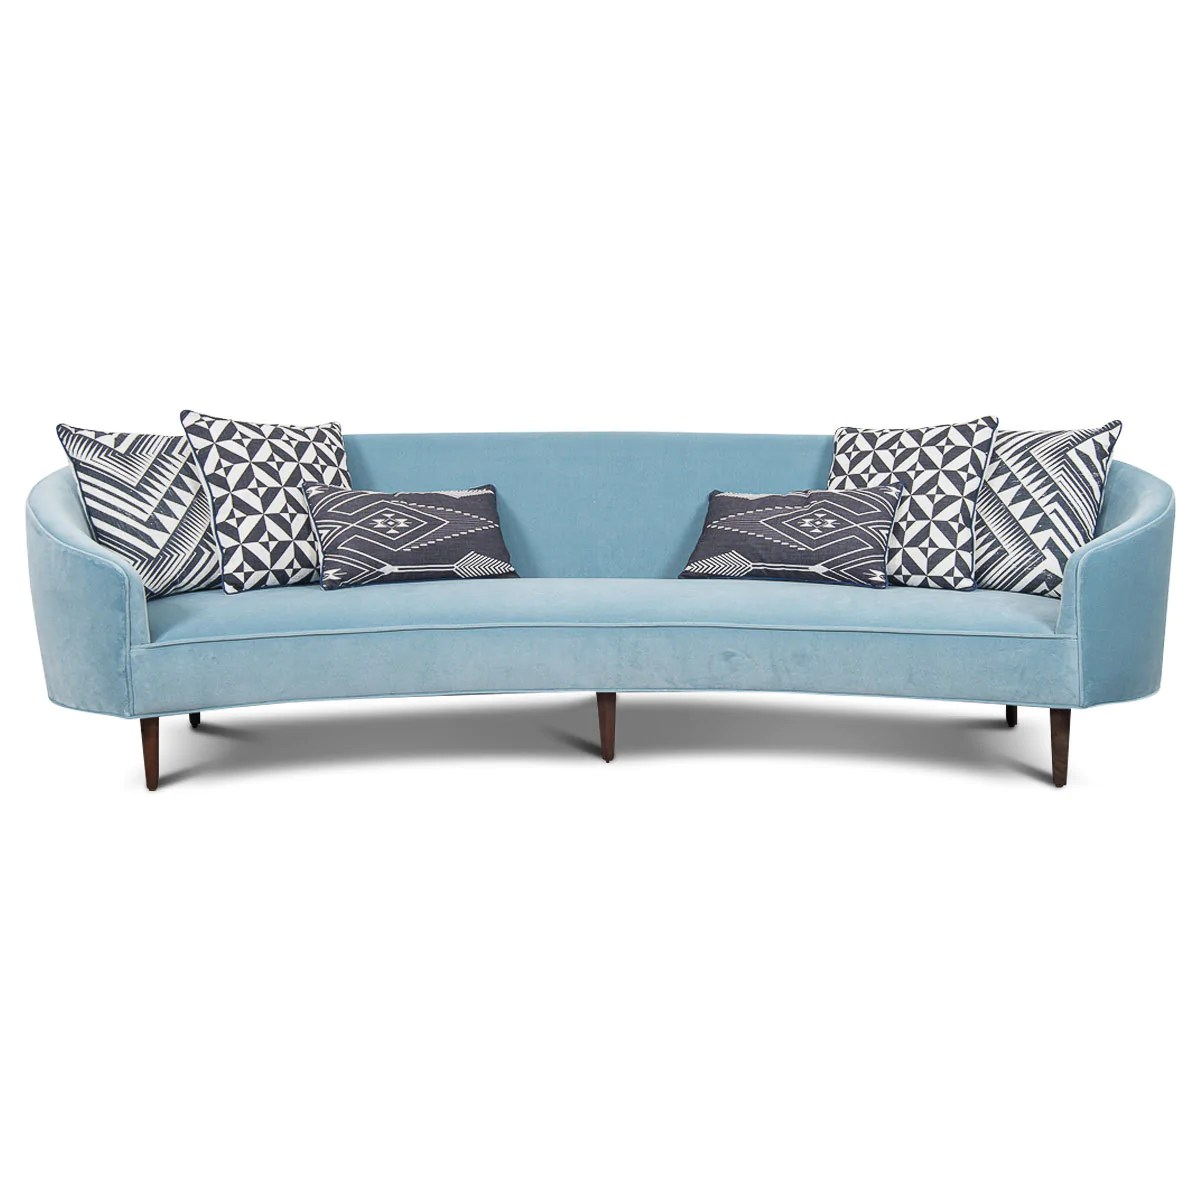 Art Deco Style Sofas Art Deco Style Crescent Sofa With Curved Arms - Modshop